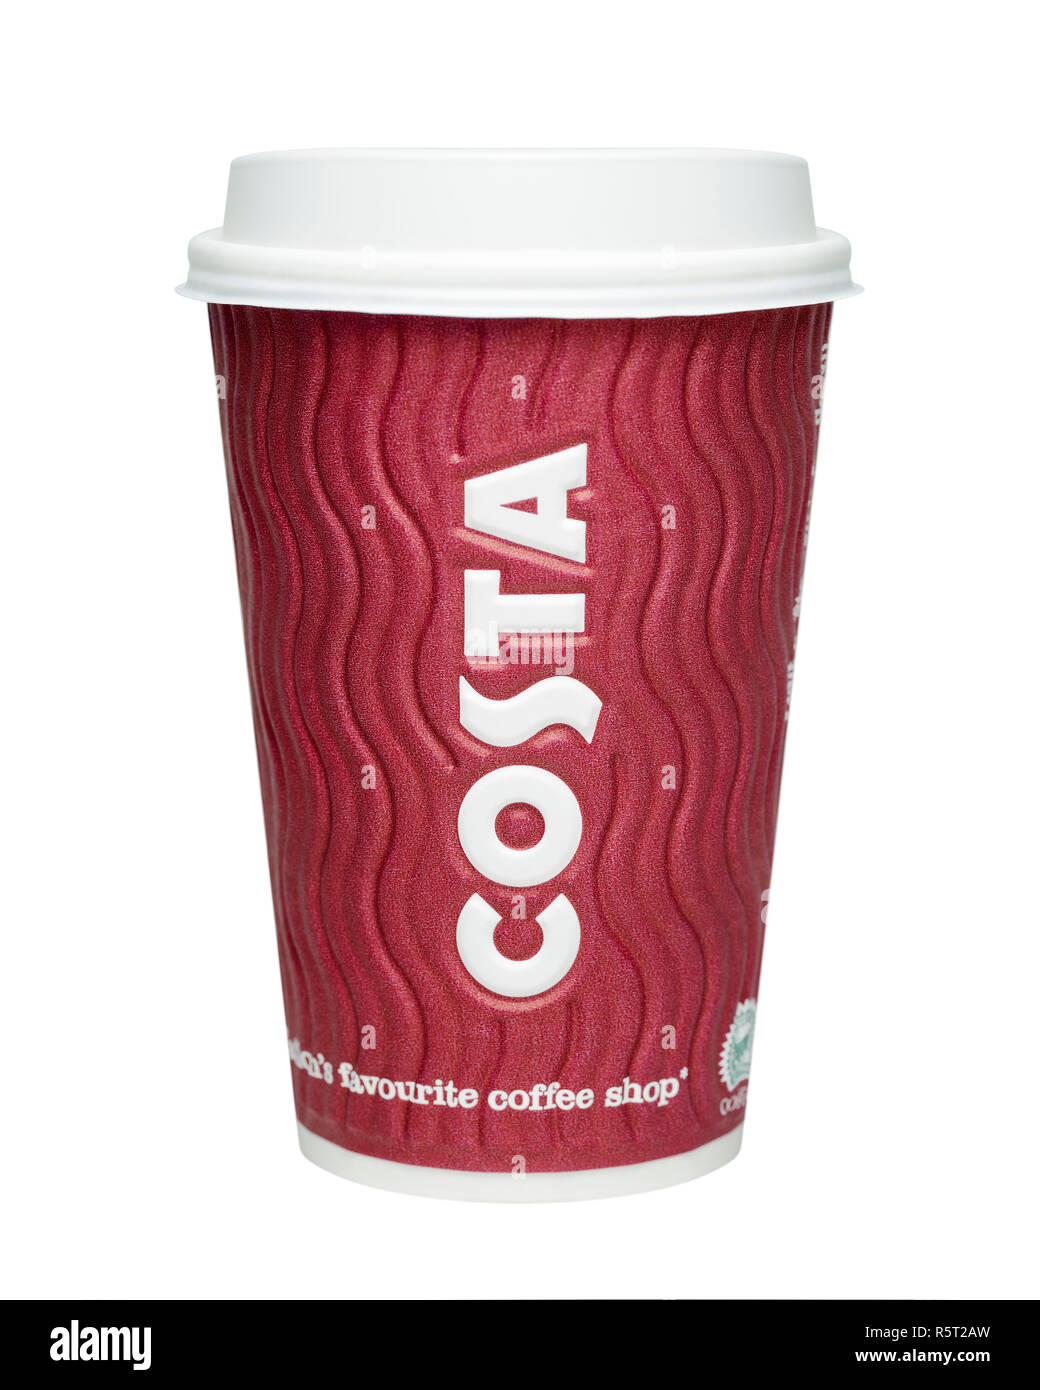 Costa Coffee Cup - Stock Image